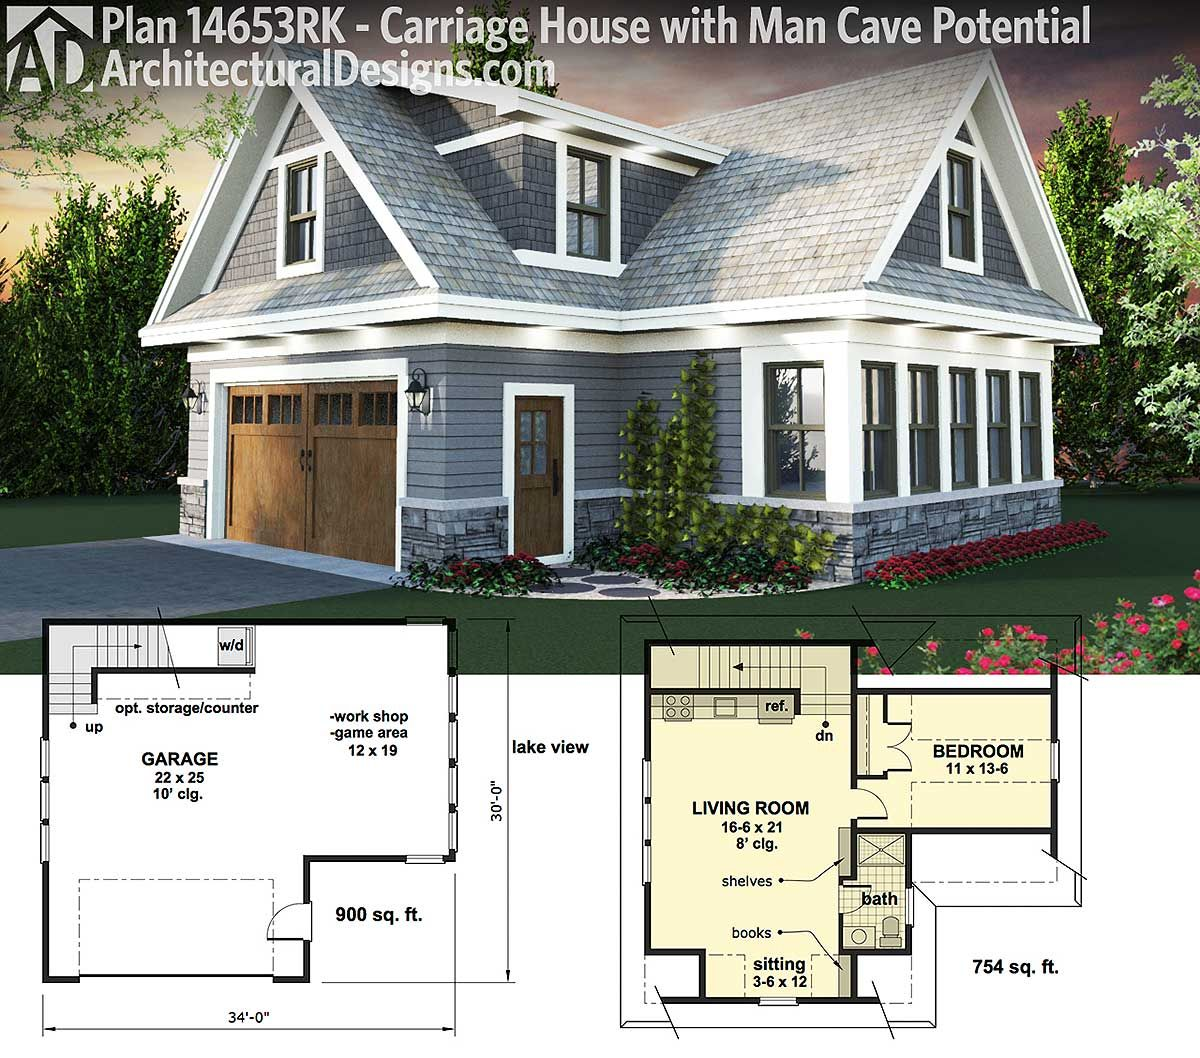 Plan 14653rk carriage house plan with man cave potential for A frame house plans with garage